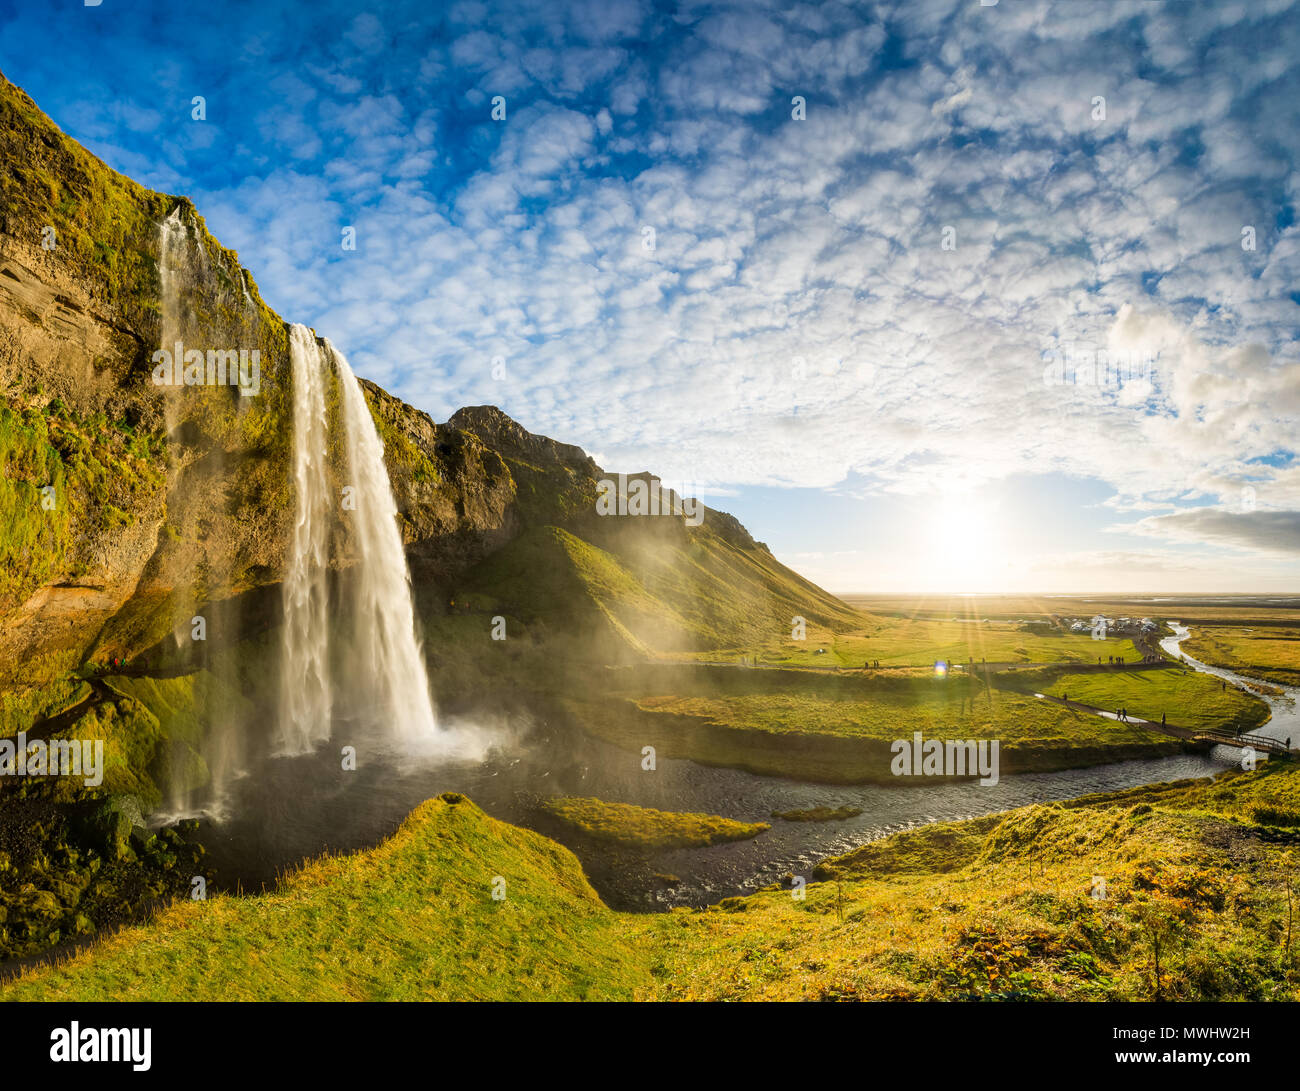 panoramic shot of one of the most beautiful waterfalls in Iceland. - Stock Image